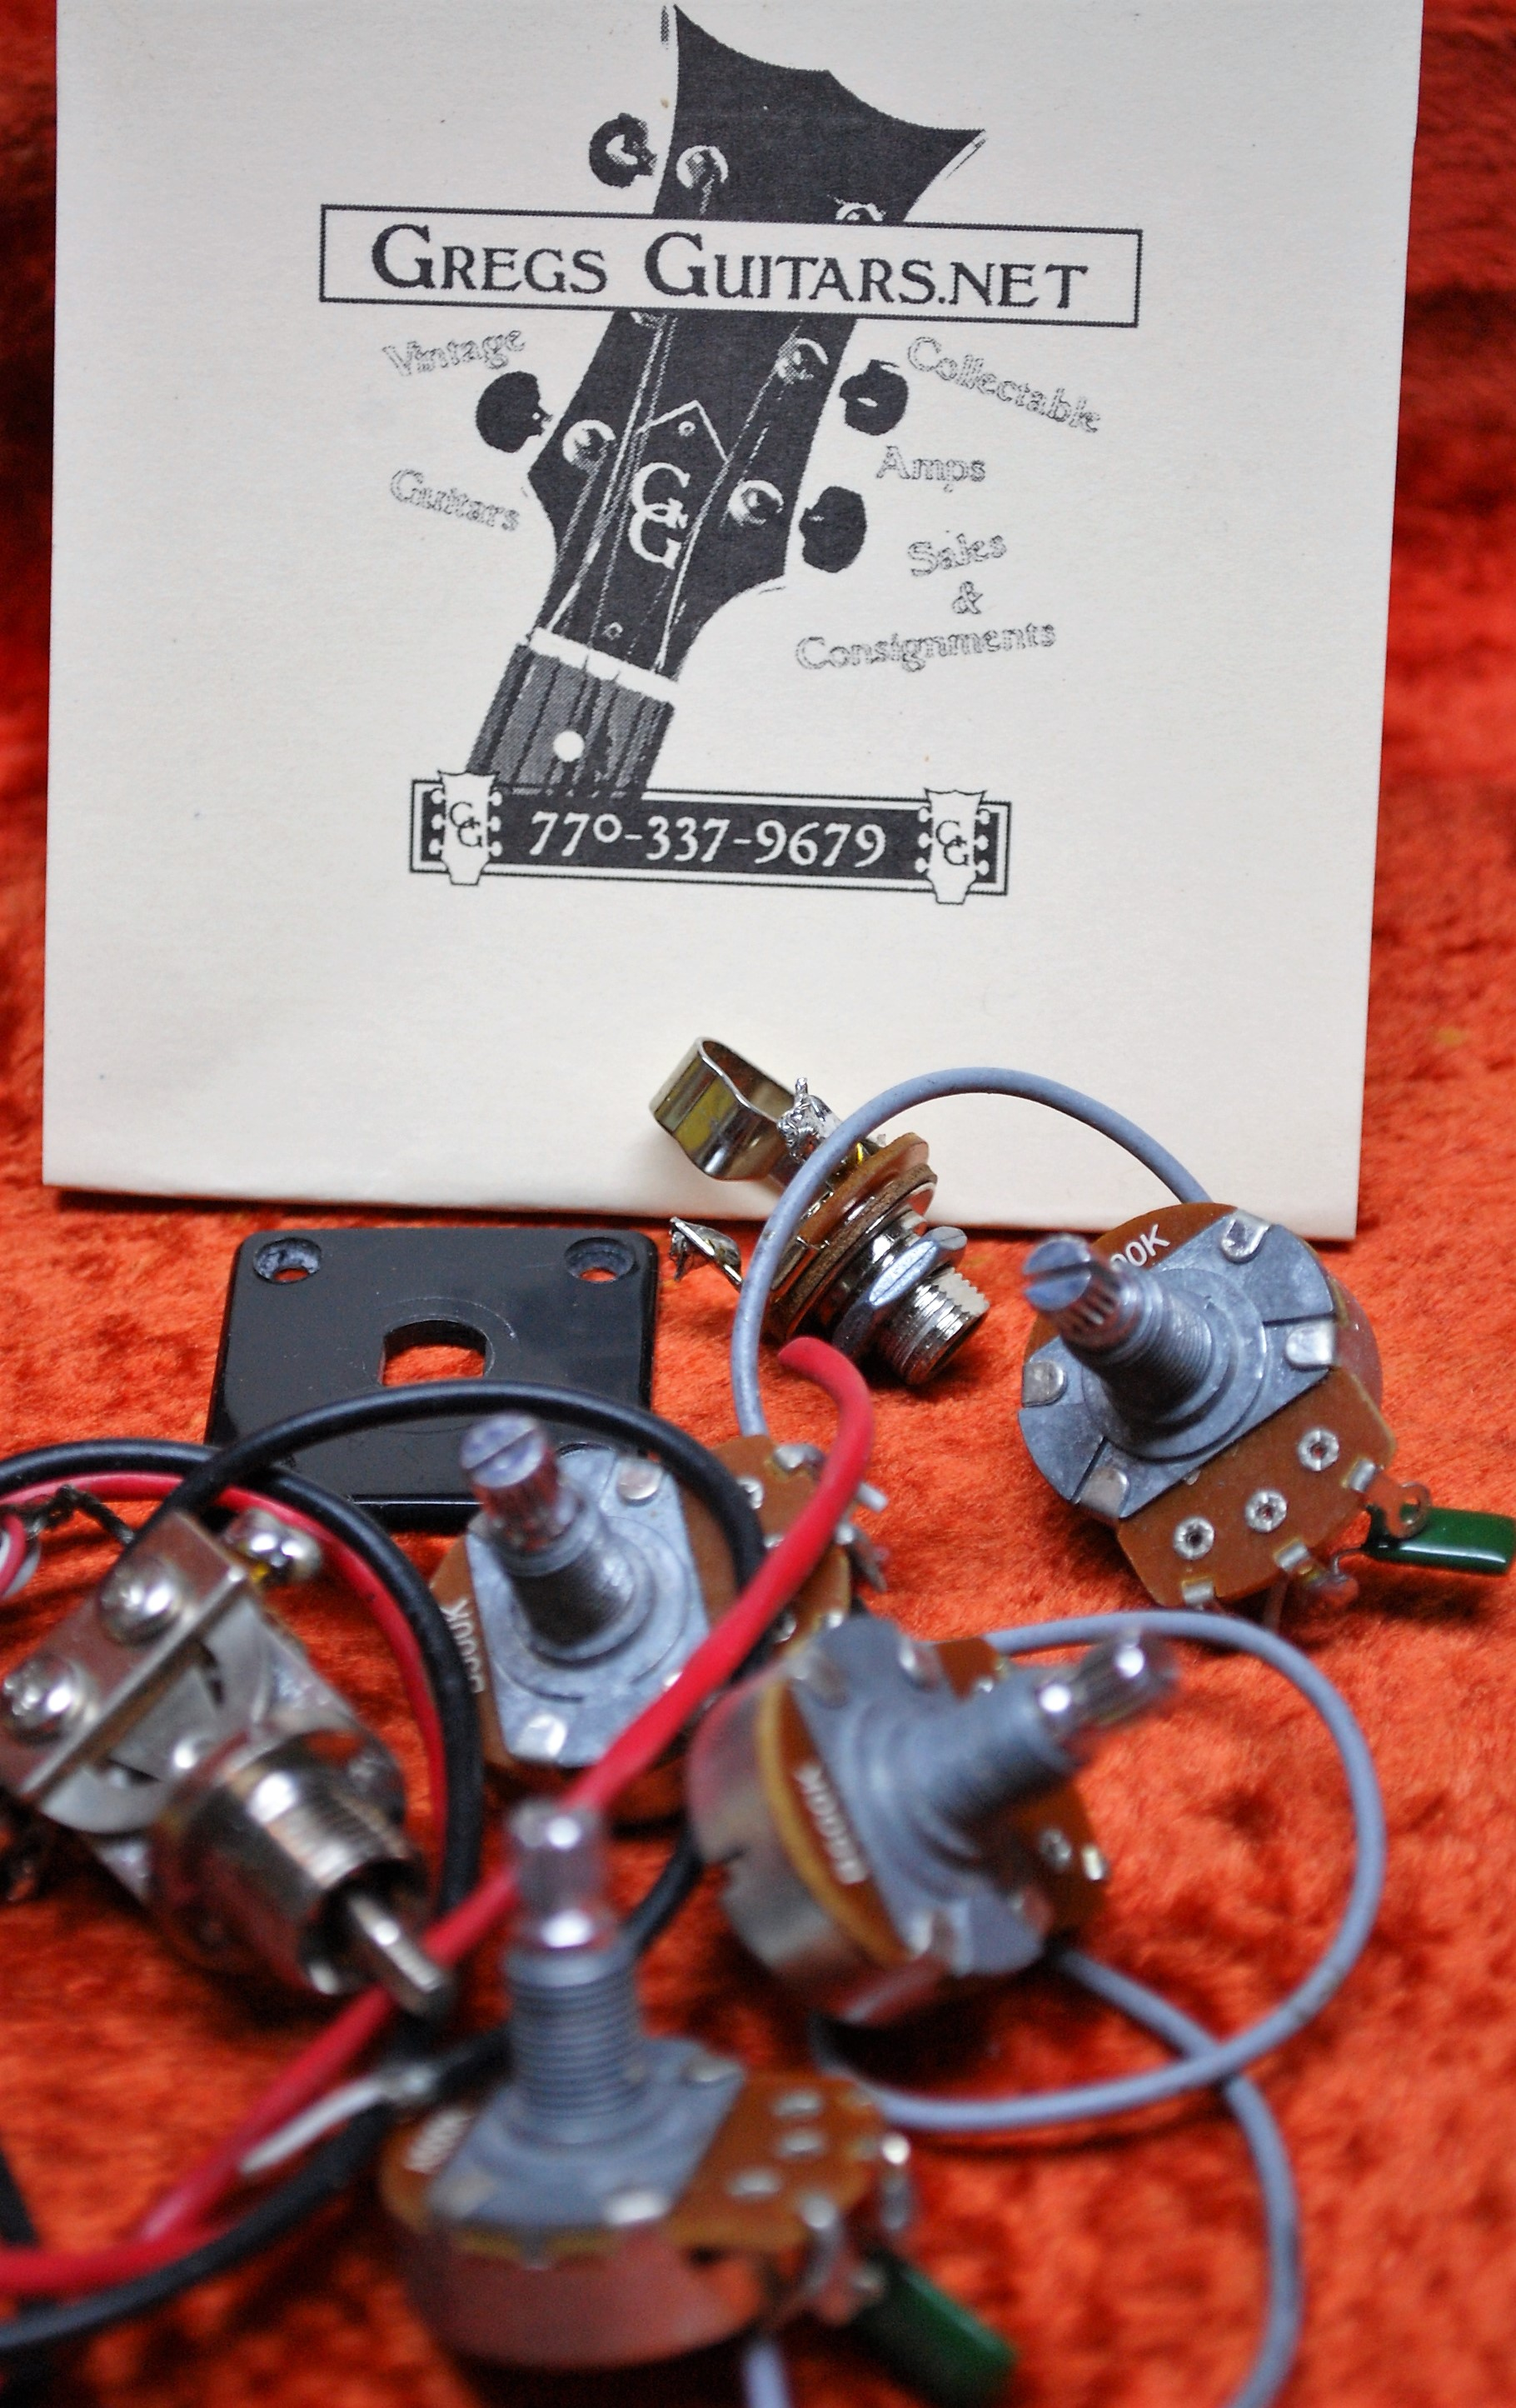 Epiphone Wiring Harness Library Kenwood Dnx7140 Diagram Gibson Guitar Parts Gregs Guitars